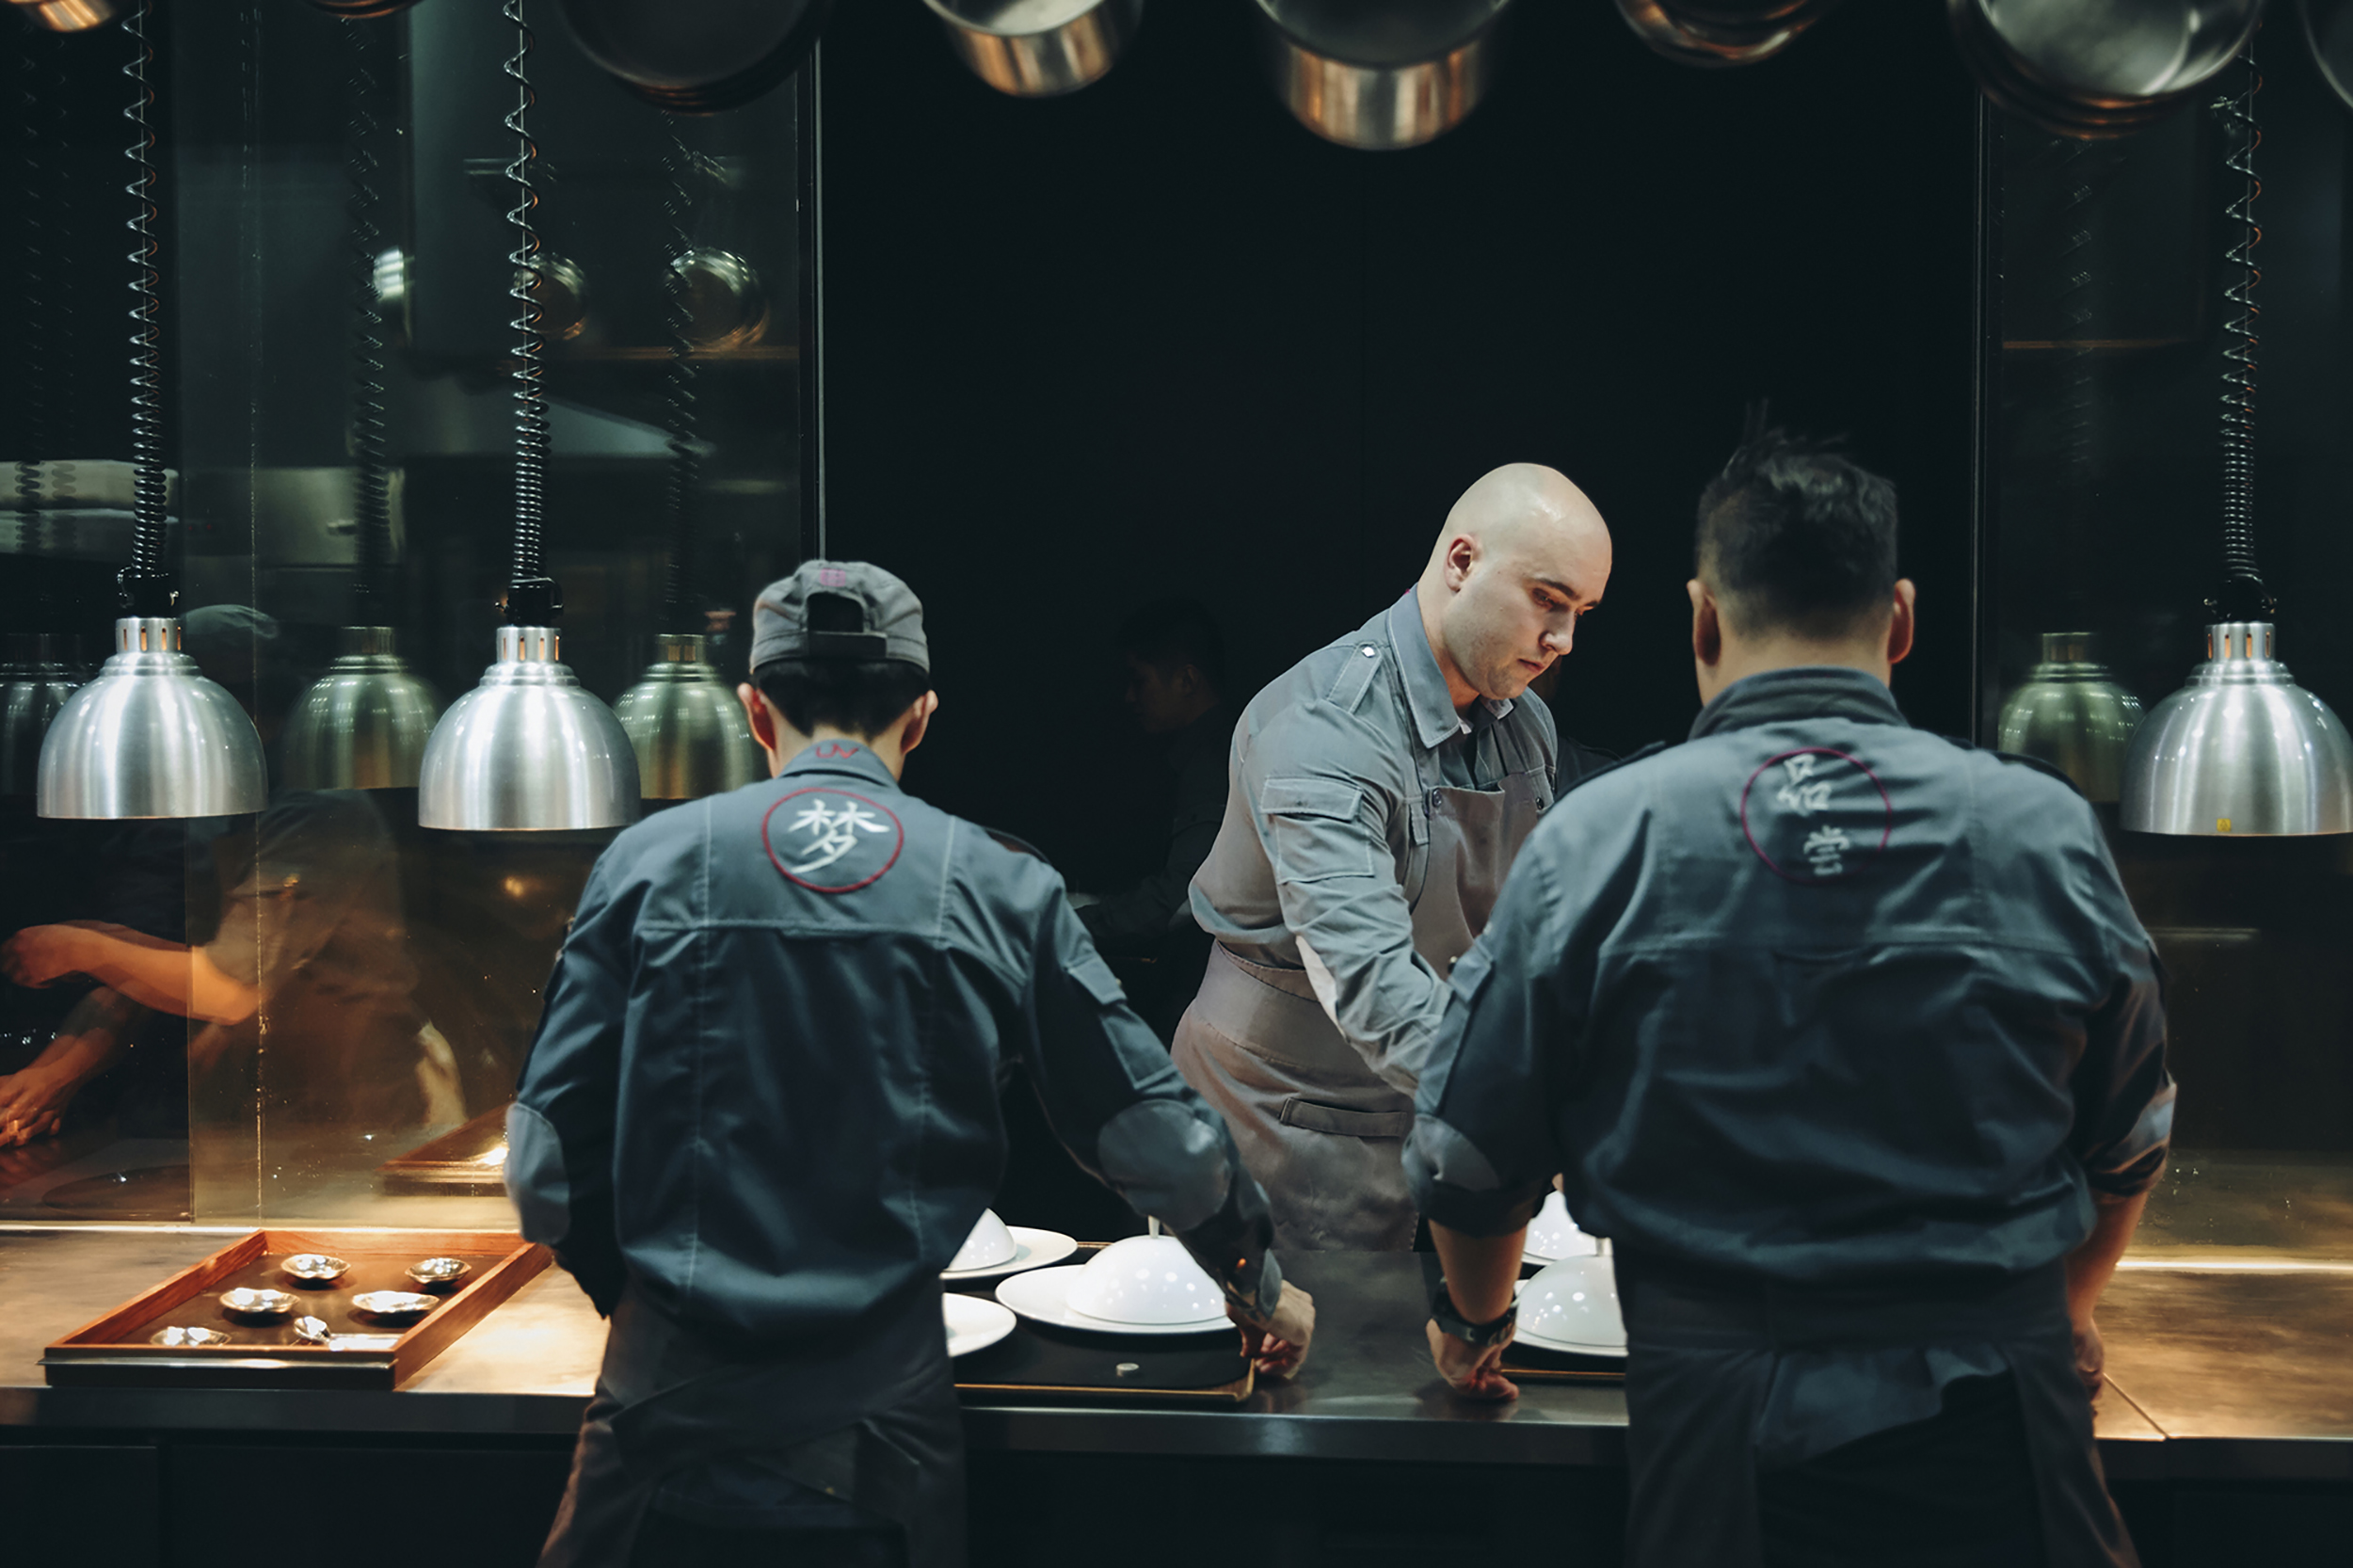 shanghai-chefs-thom-rigney-professional-photographer-china-travel-food-011